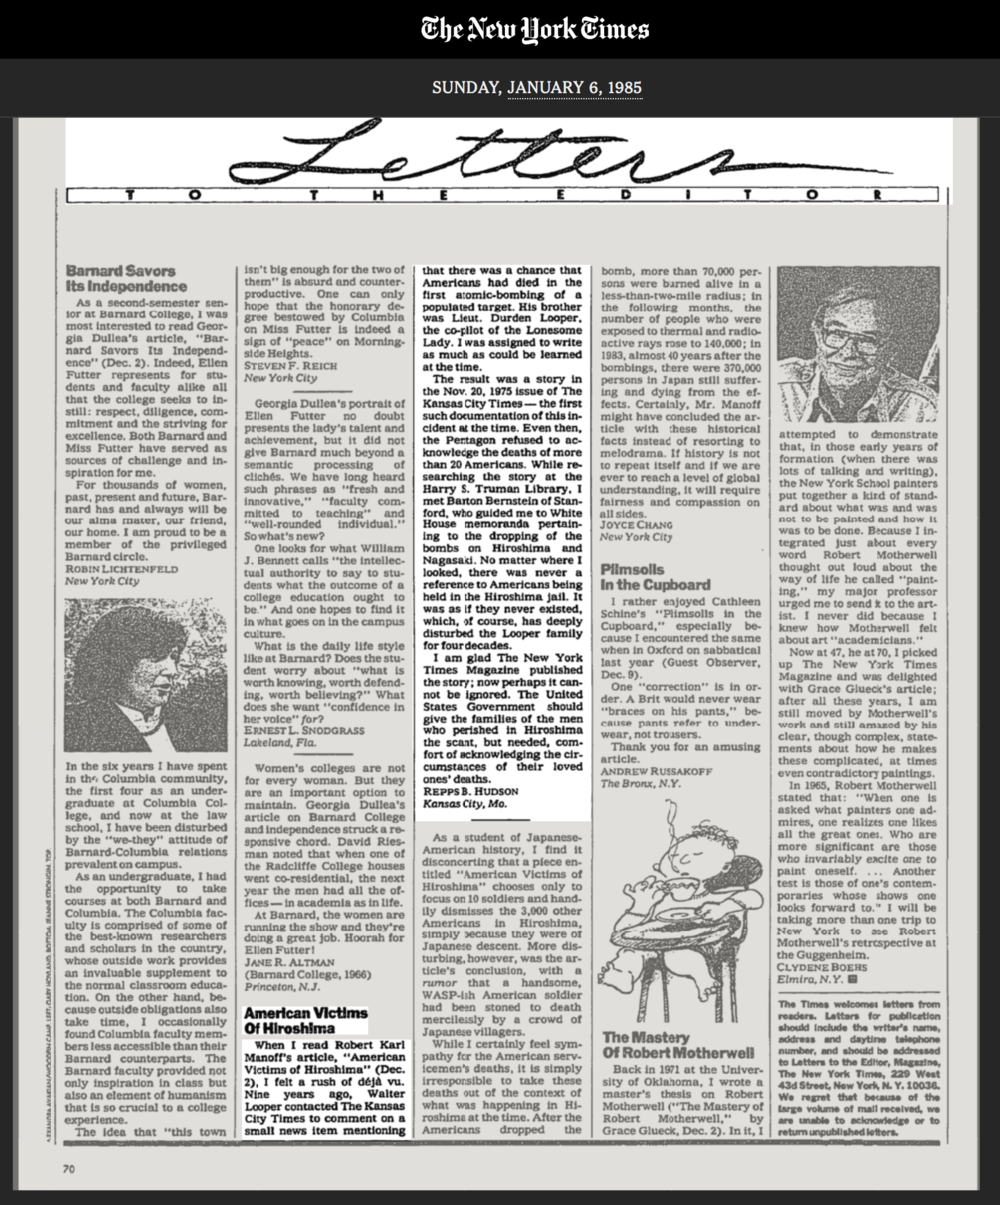 walter_looper_repps_hudson_nytimes letterviz1975.png